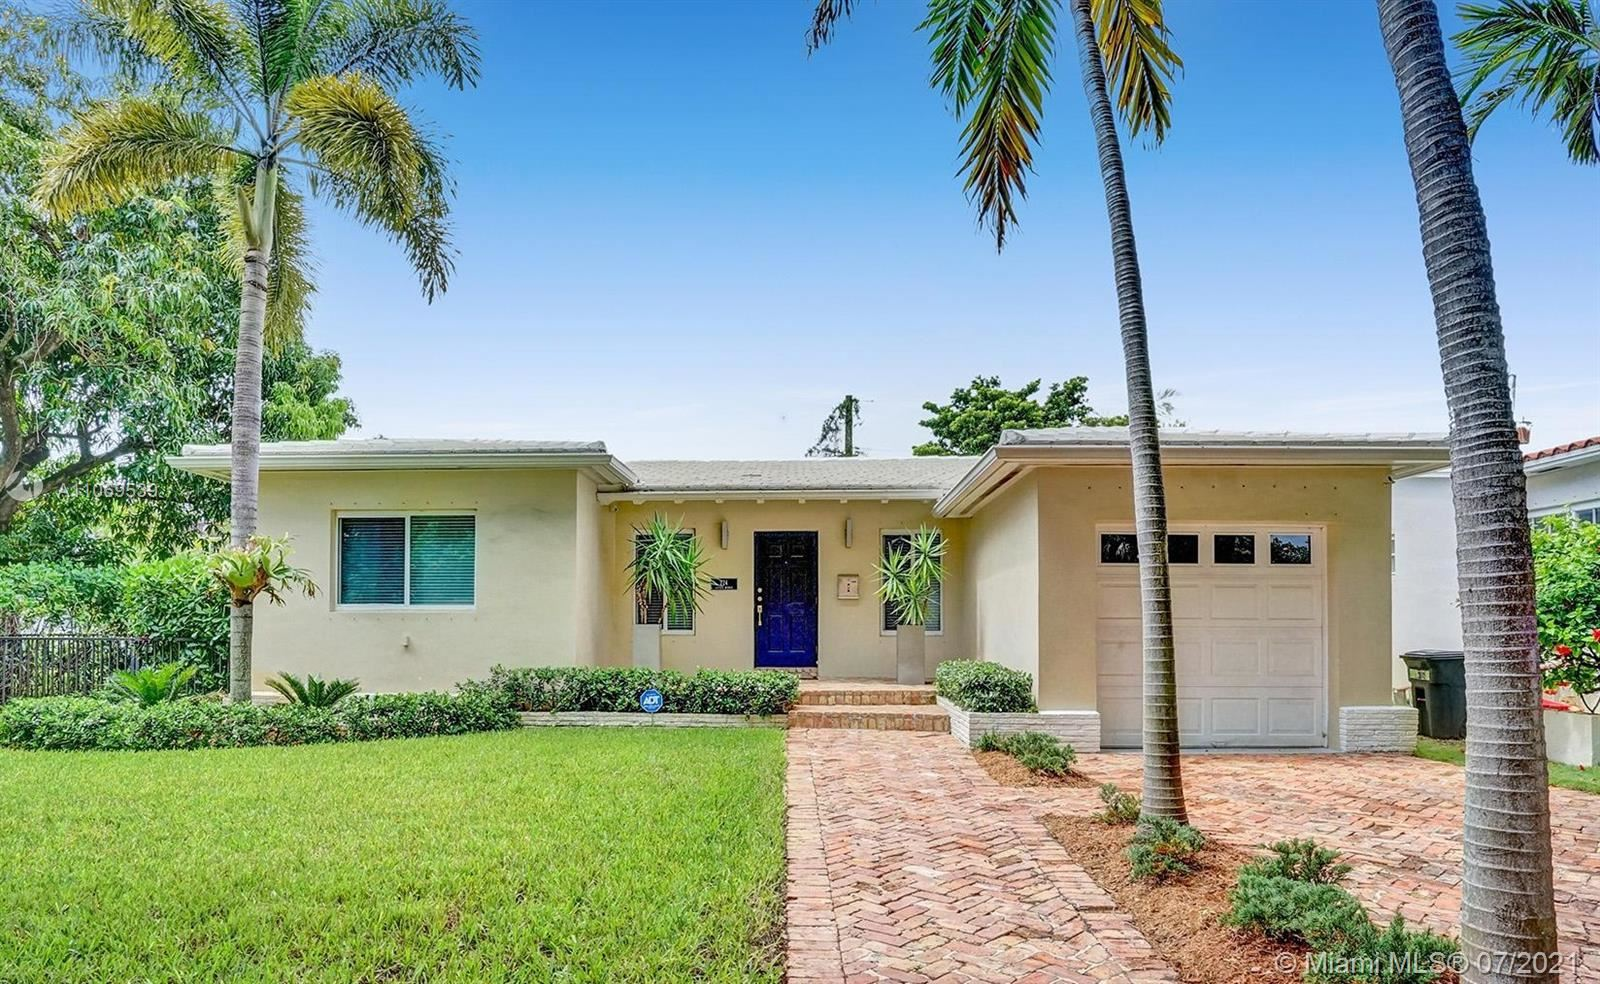 224 Candia Ave, Coral Gables, FL 33134 - #: A11069539